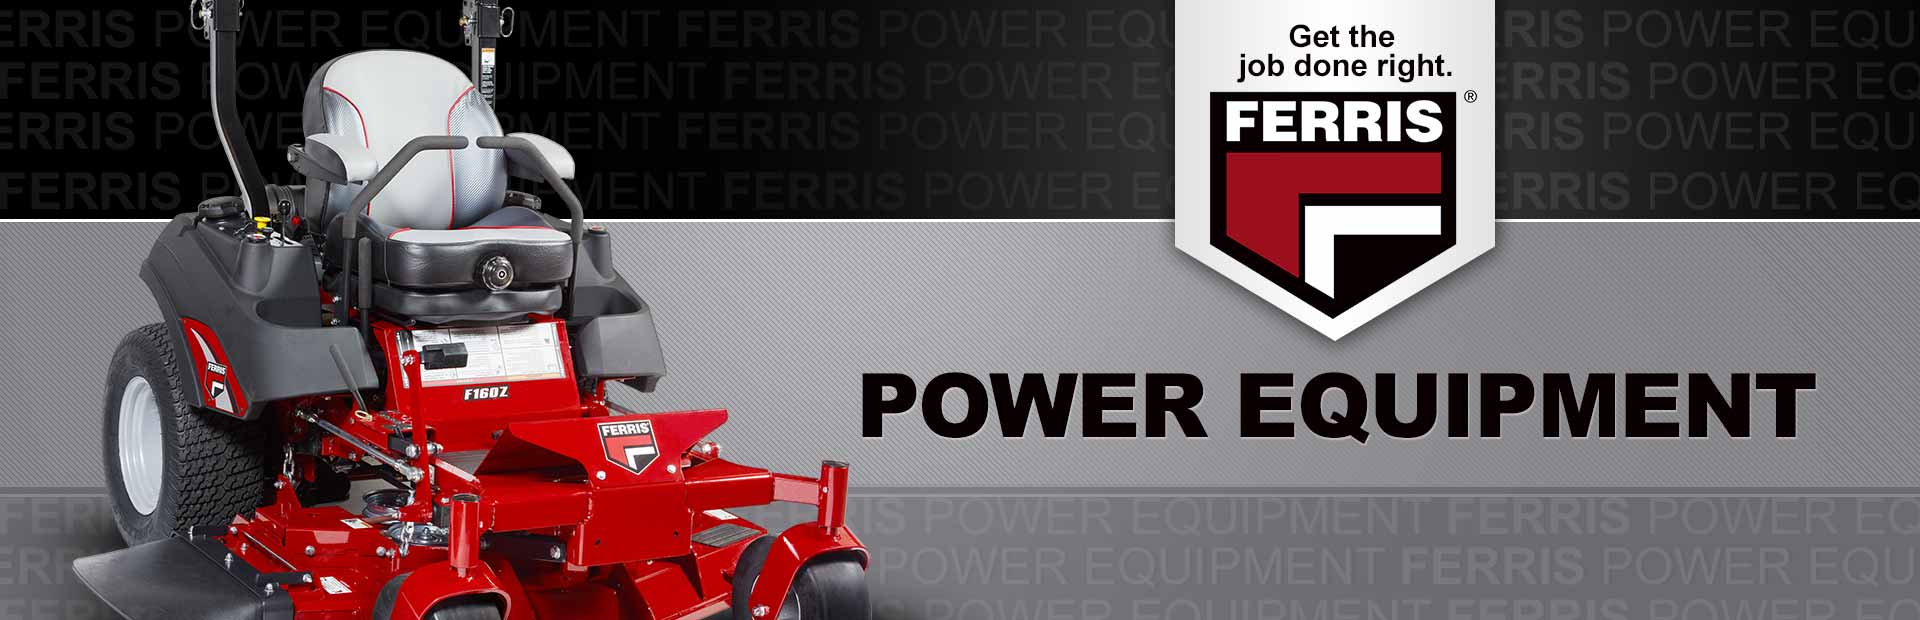 C B Small Engine Repair Provides Premium Outdoor Power Equipment Lawn Mower Diagram Ferris Click Here To View The Models